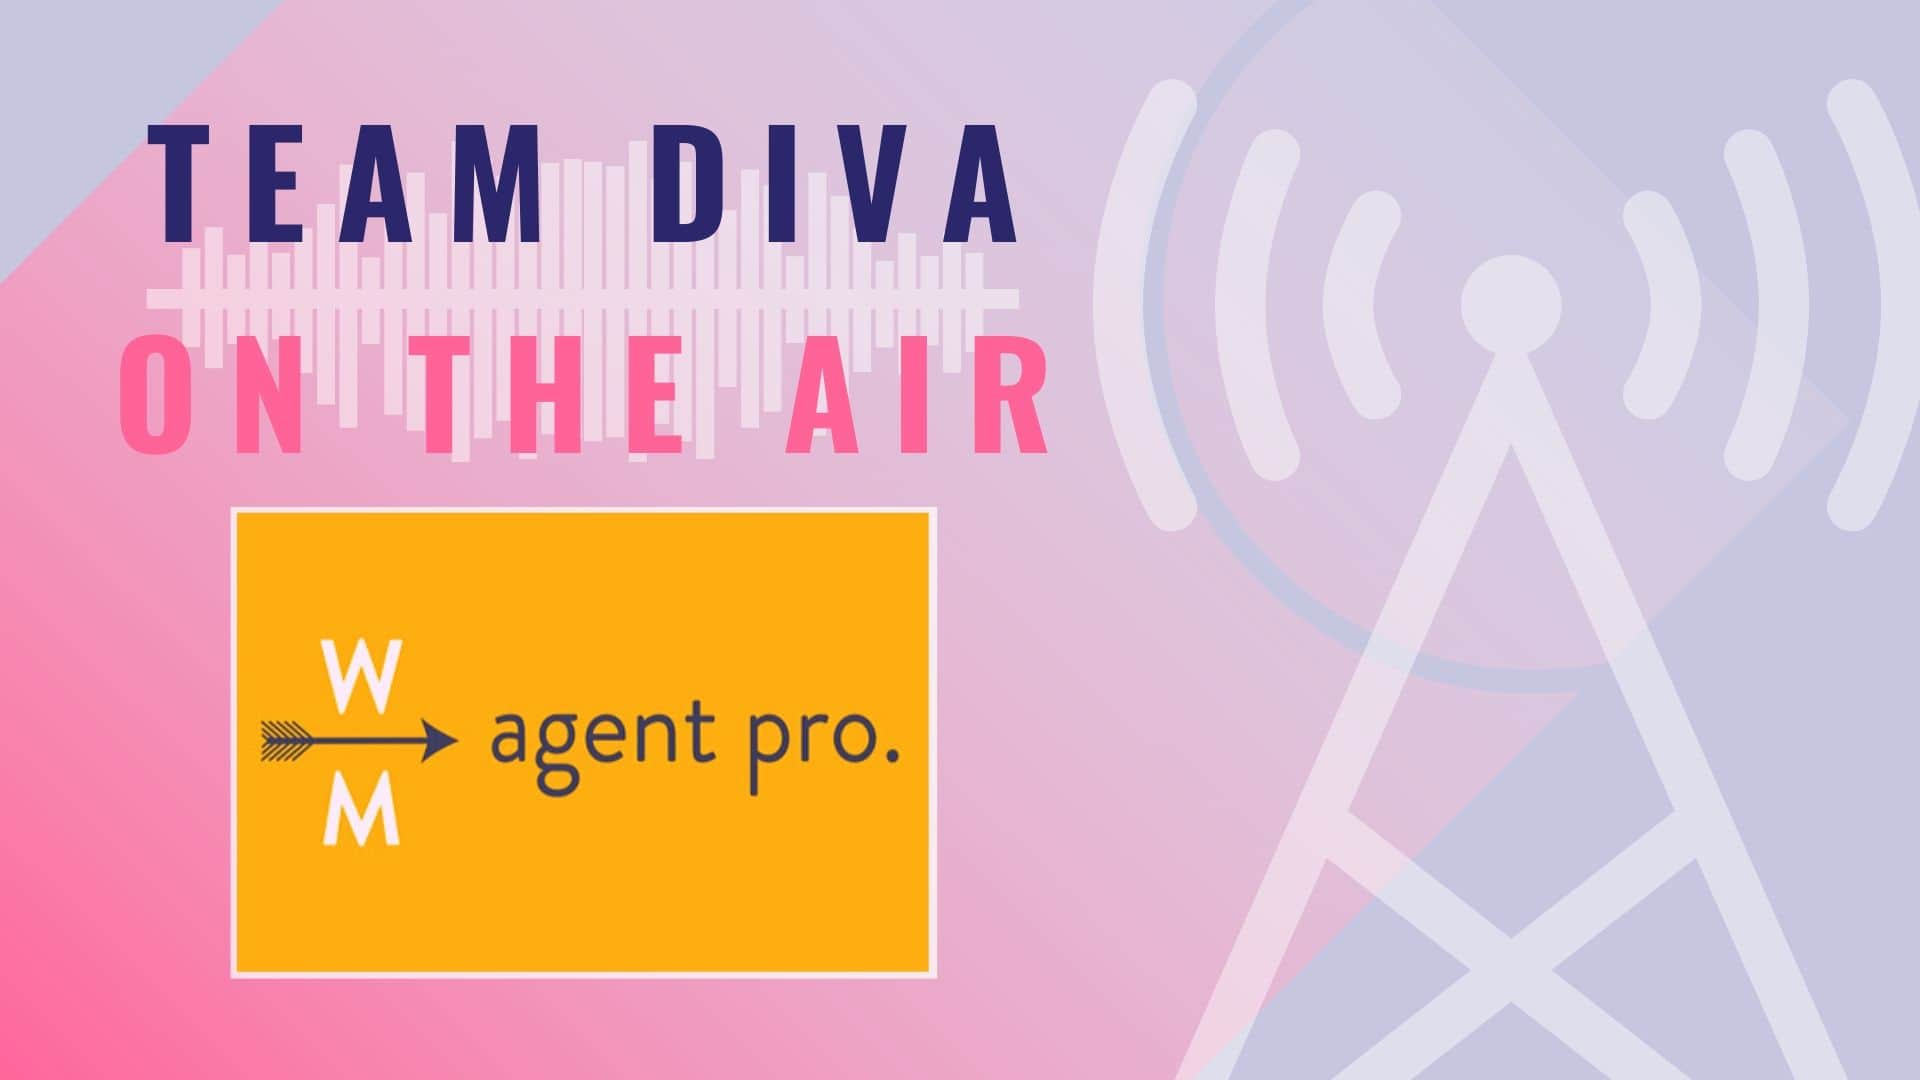 West and Main Agent Pro Podcast with Team Diva